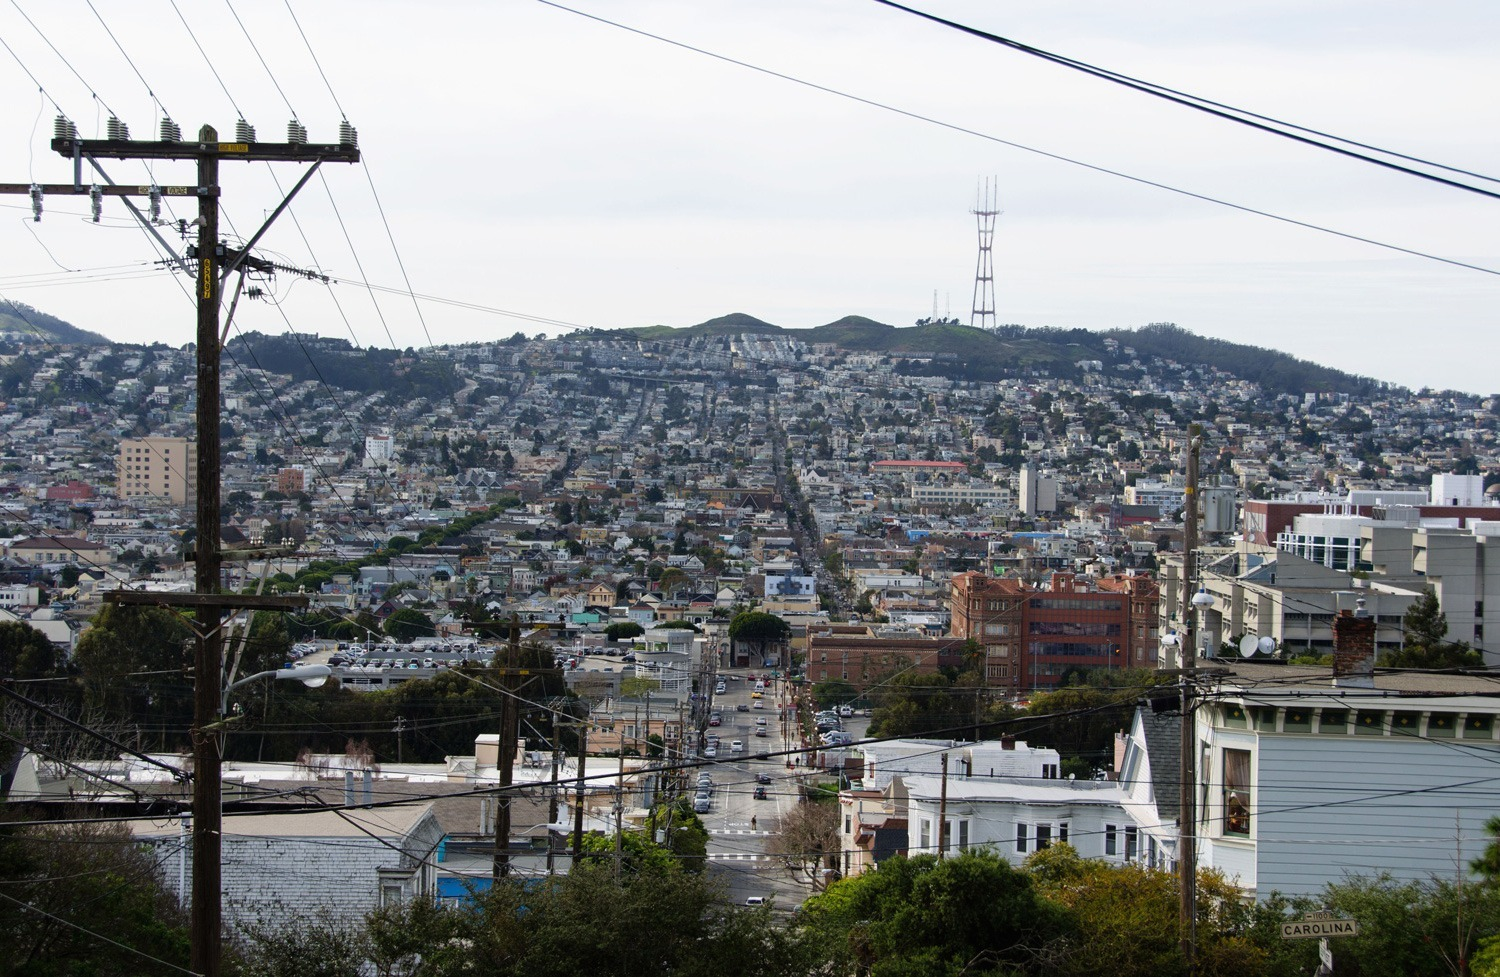 A view of 24th street from Potrero Hill